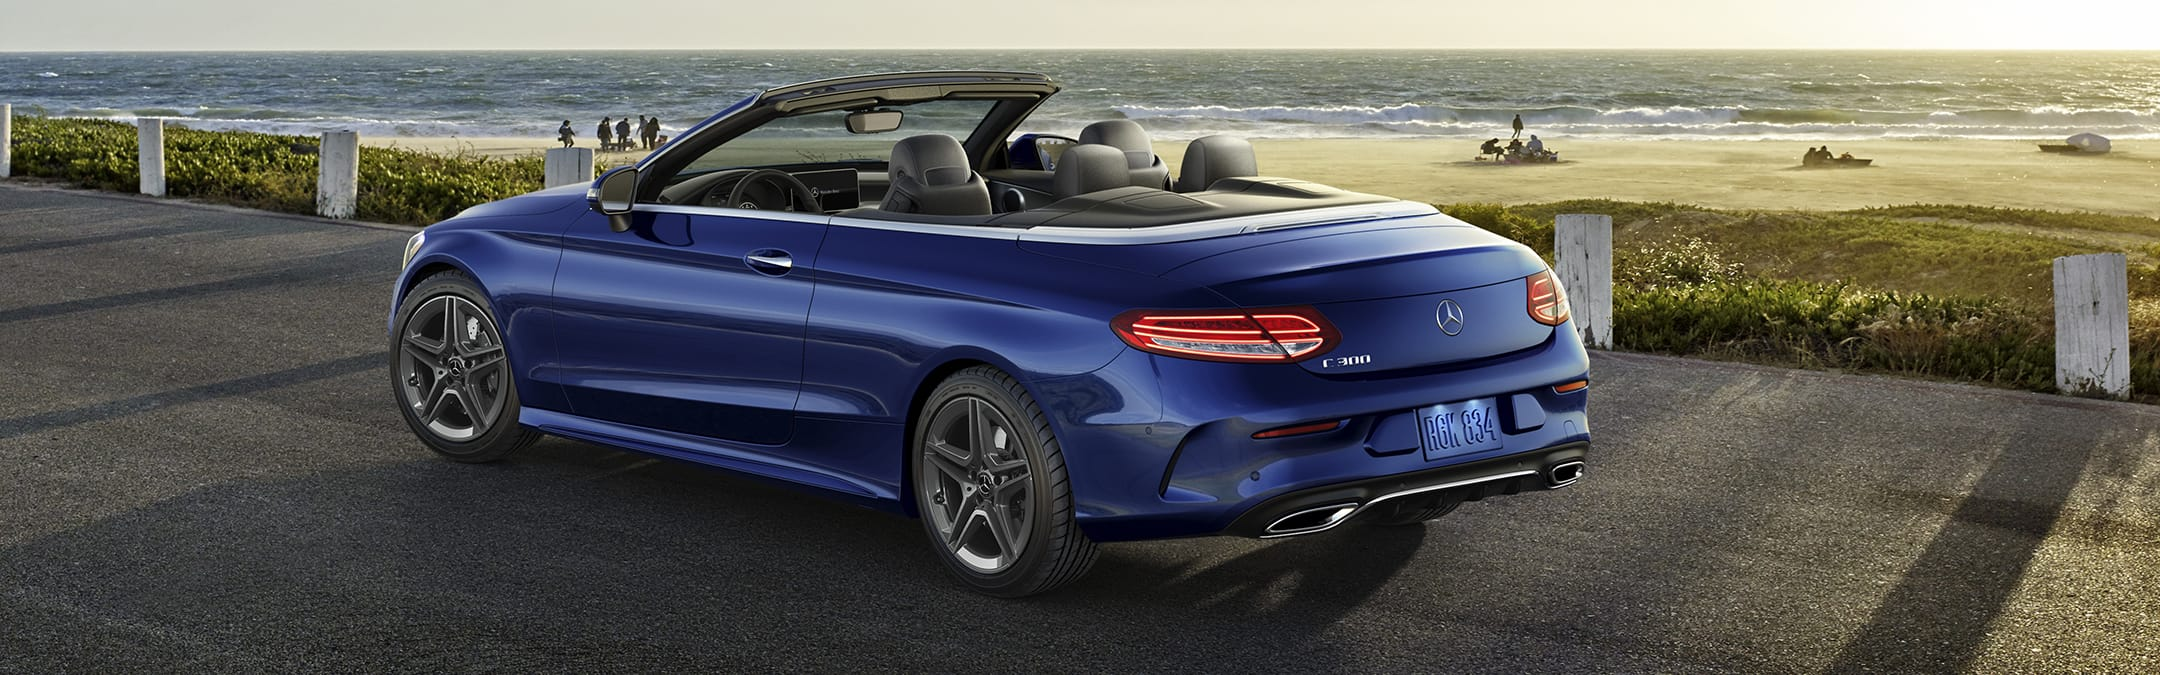 C Class Luxury Performance Cabriolets Mercedes Benz Usa